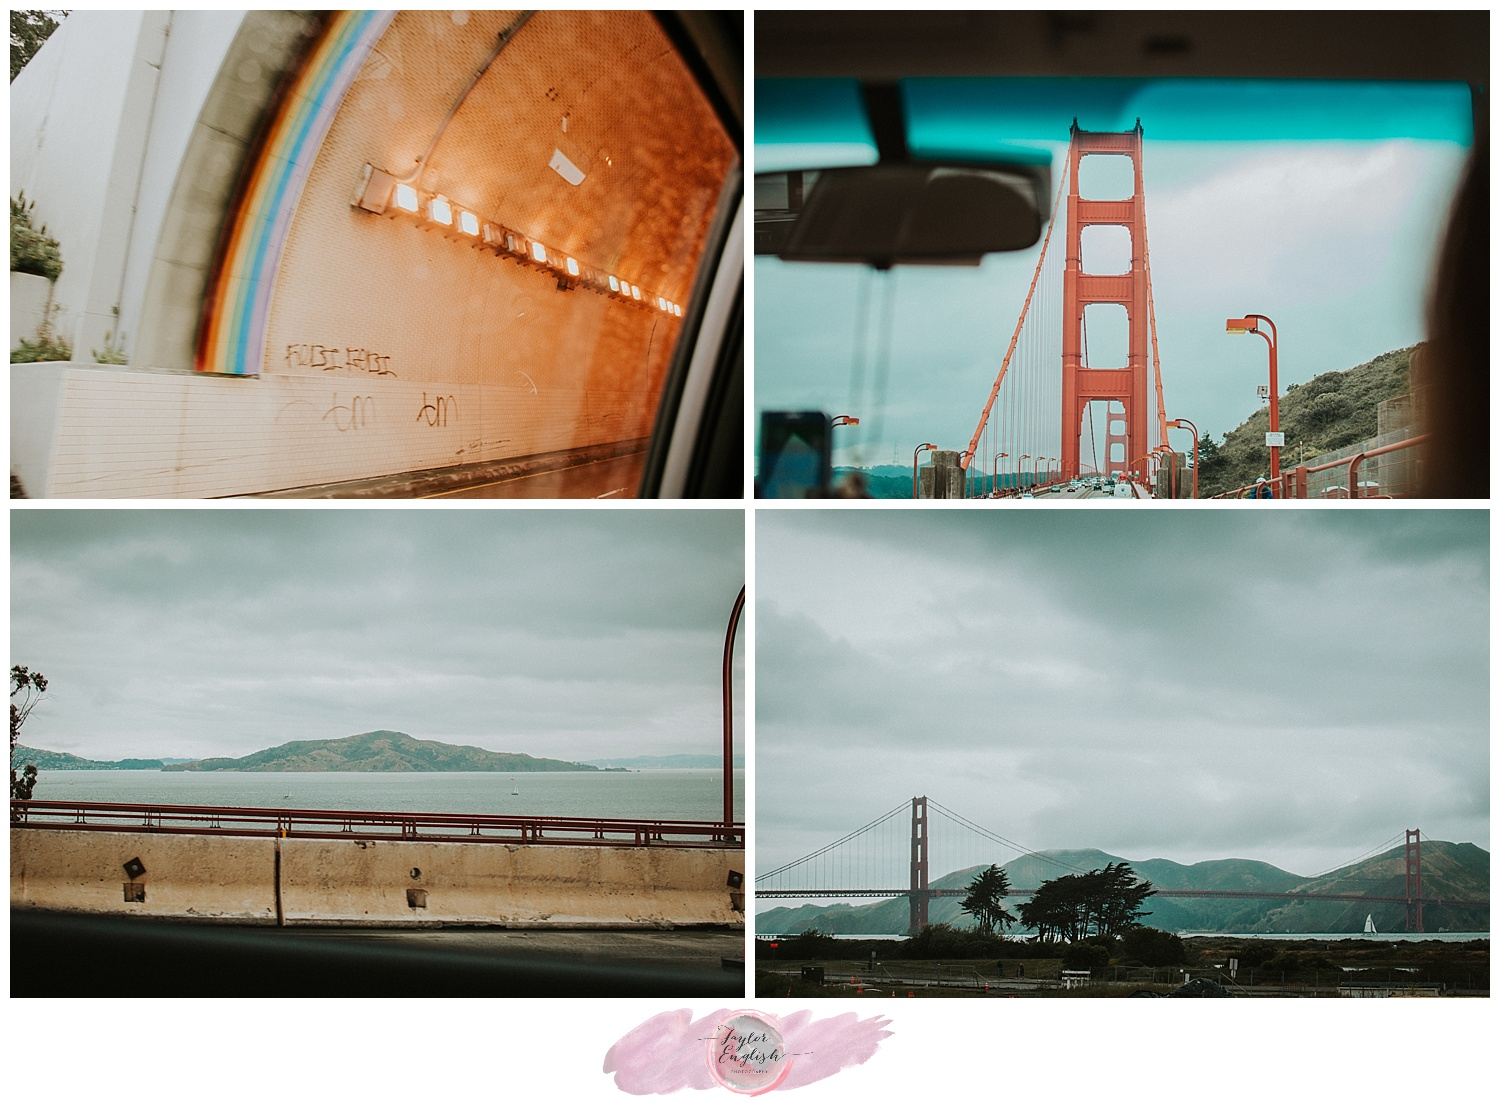 The Robin Williams tunnel and views of the giant Golden Gate Bridge from the car.